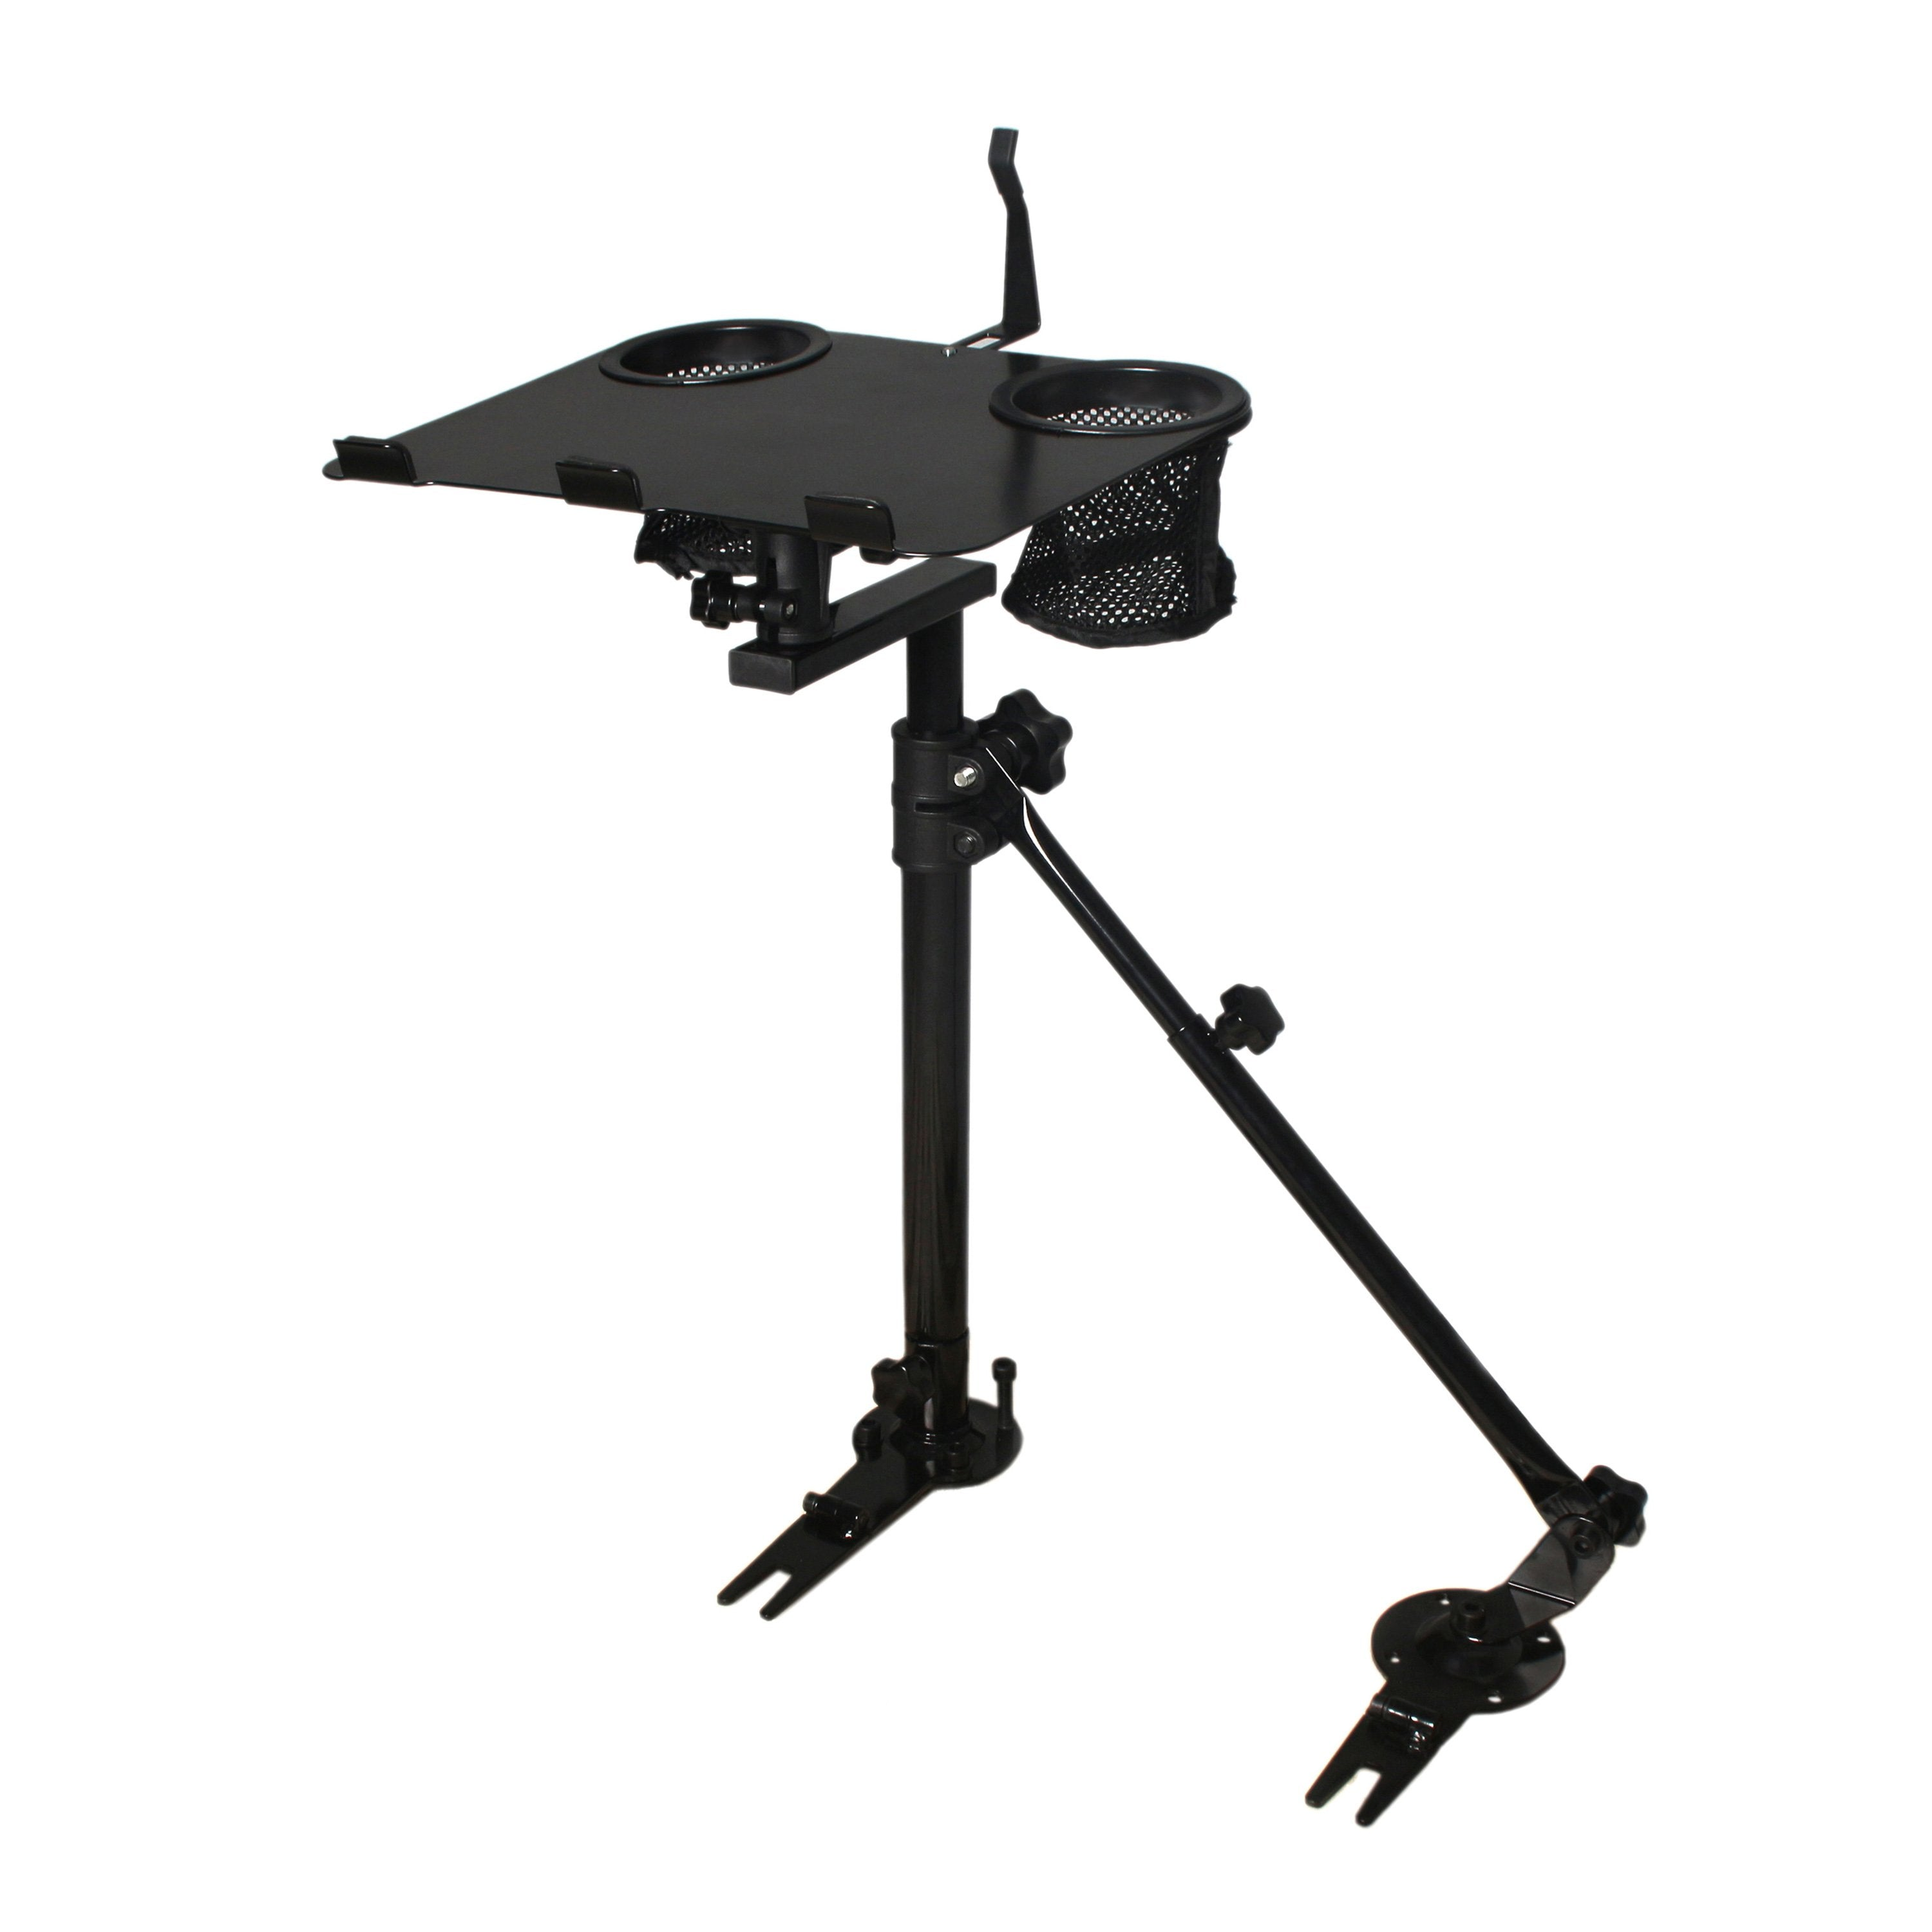 Adjustable No Drill Laptop Computer Mount Stand Holder for Vehicle Car Truck